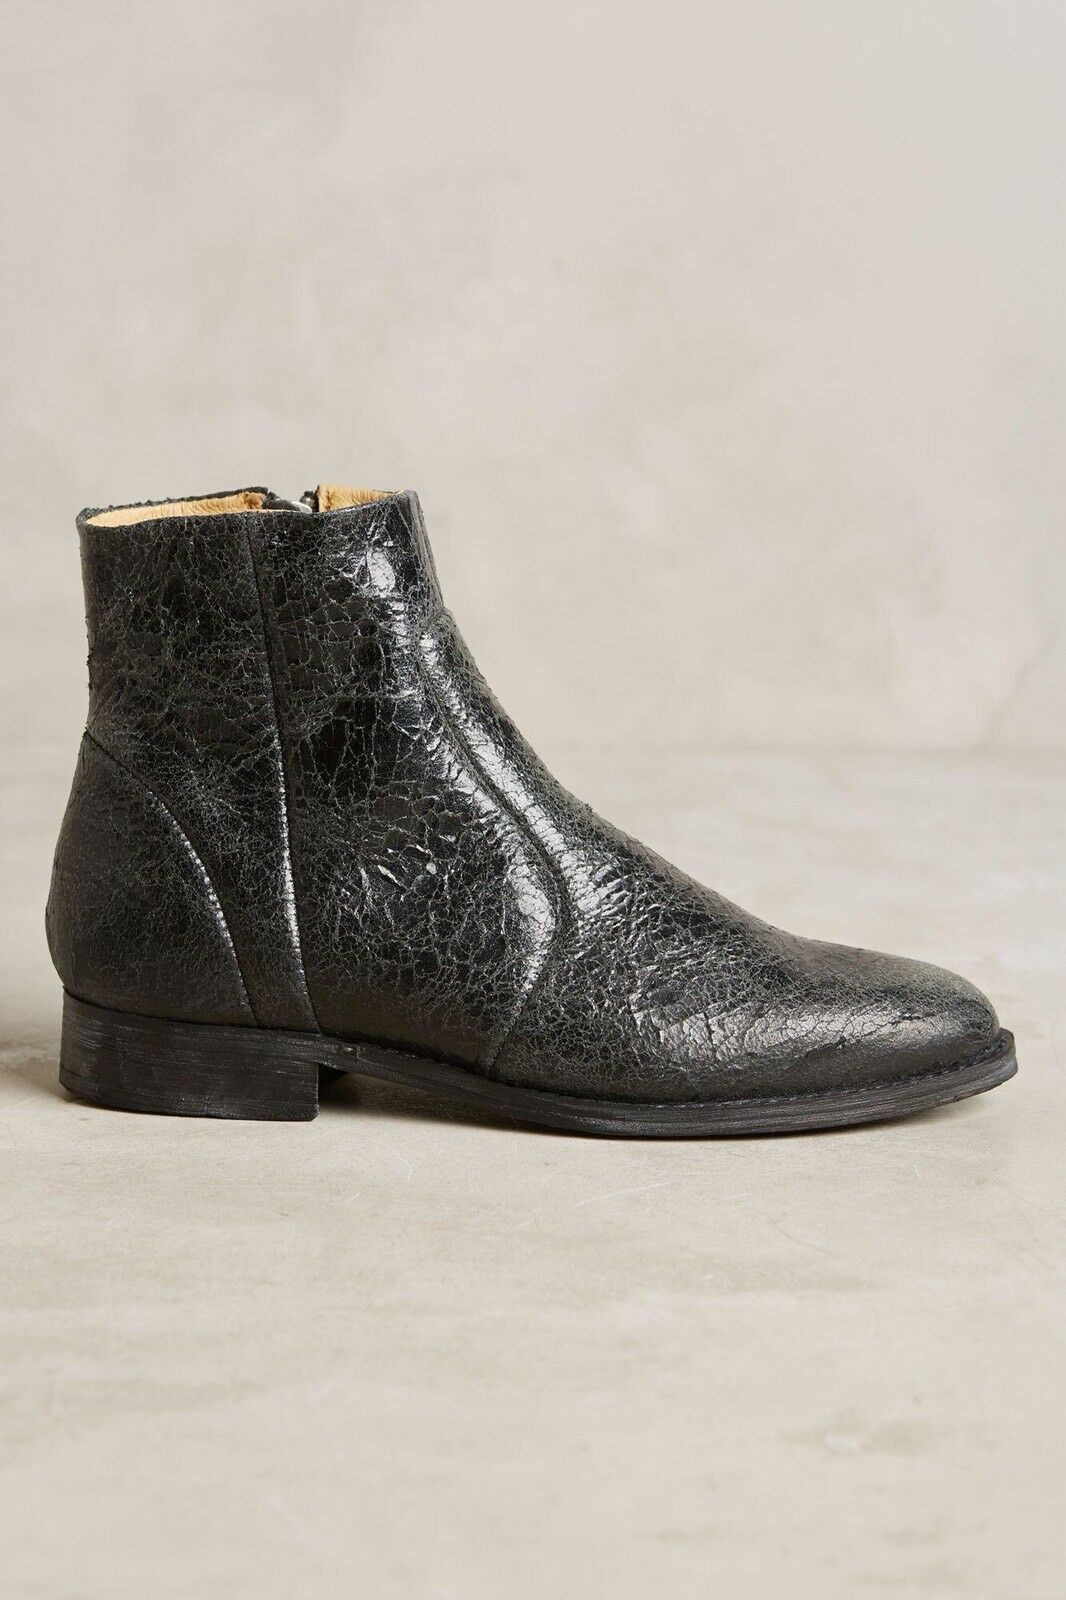 Anthropologie Farylrobin Booties Morris Leather Booties Farylrobin Size 5.5 NEW MSRP: $218 0ea569